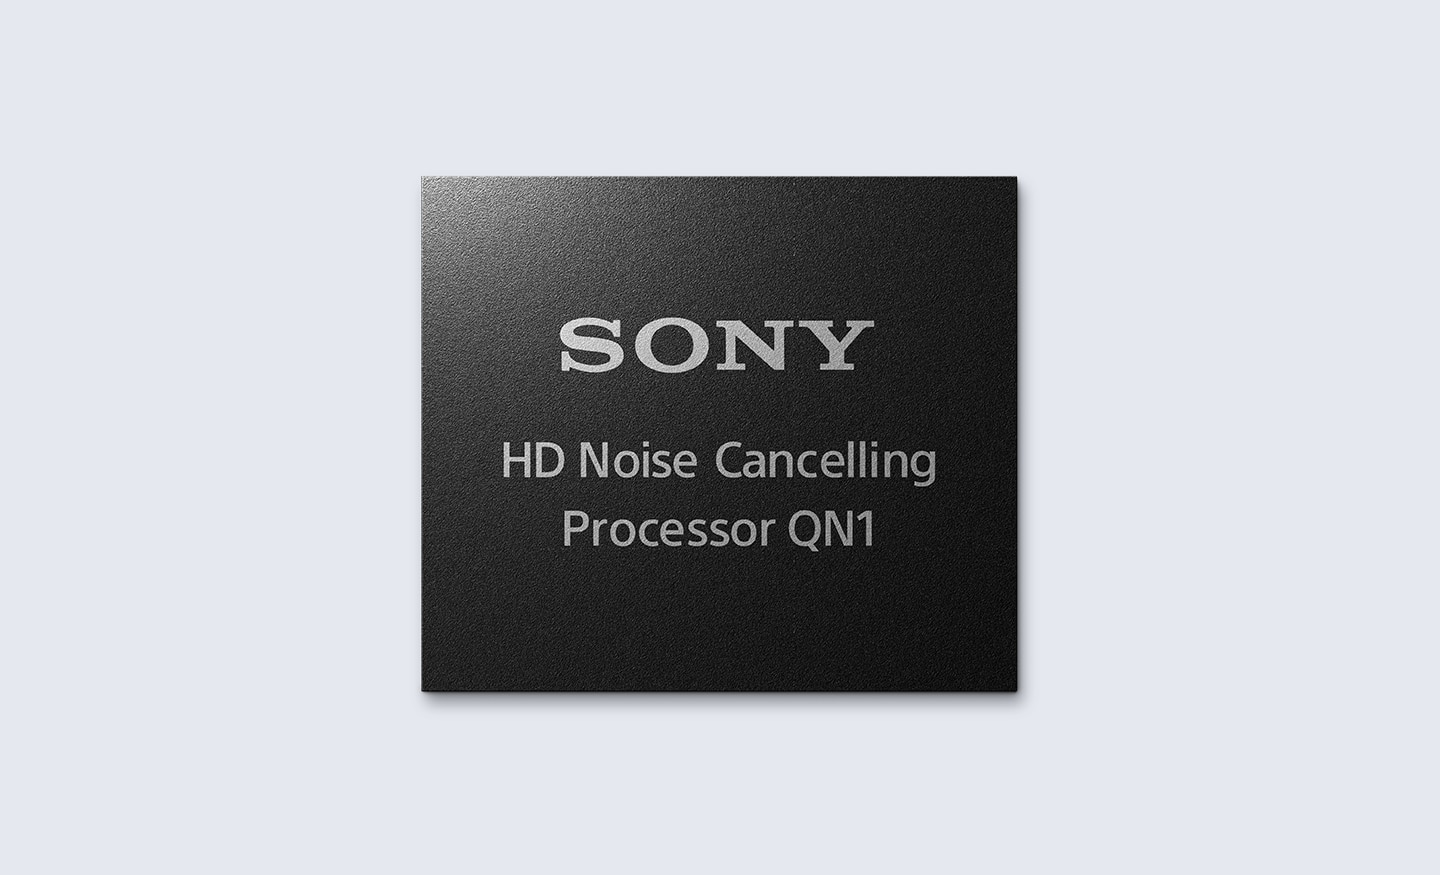 HD Noise Cancelling Processor QN1 chip